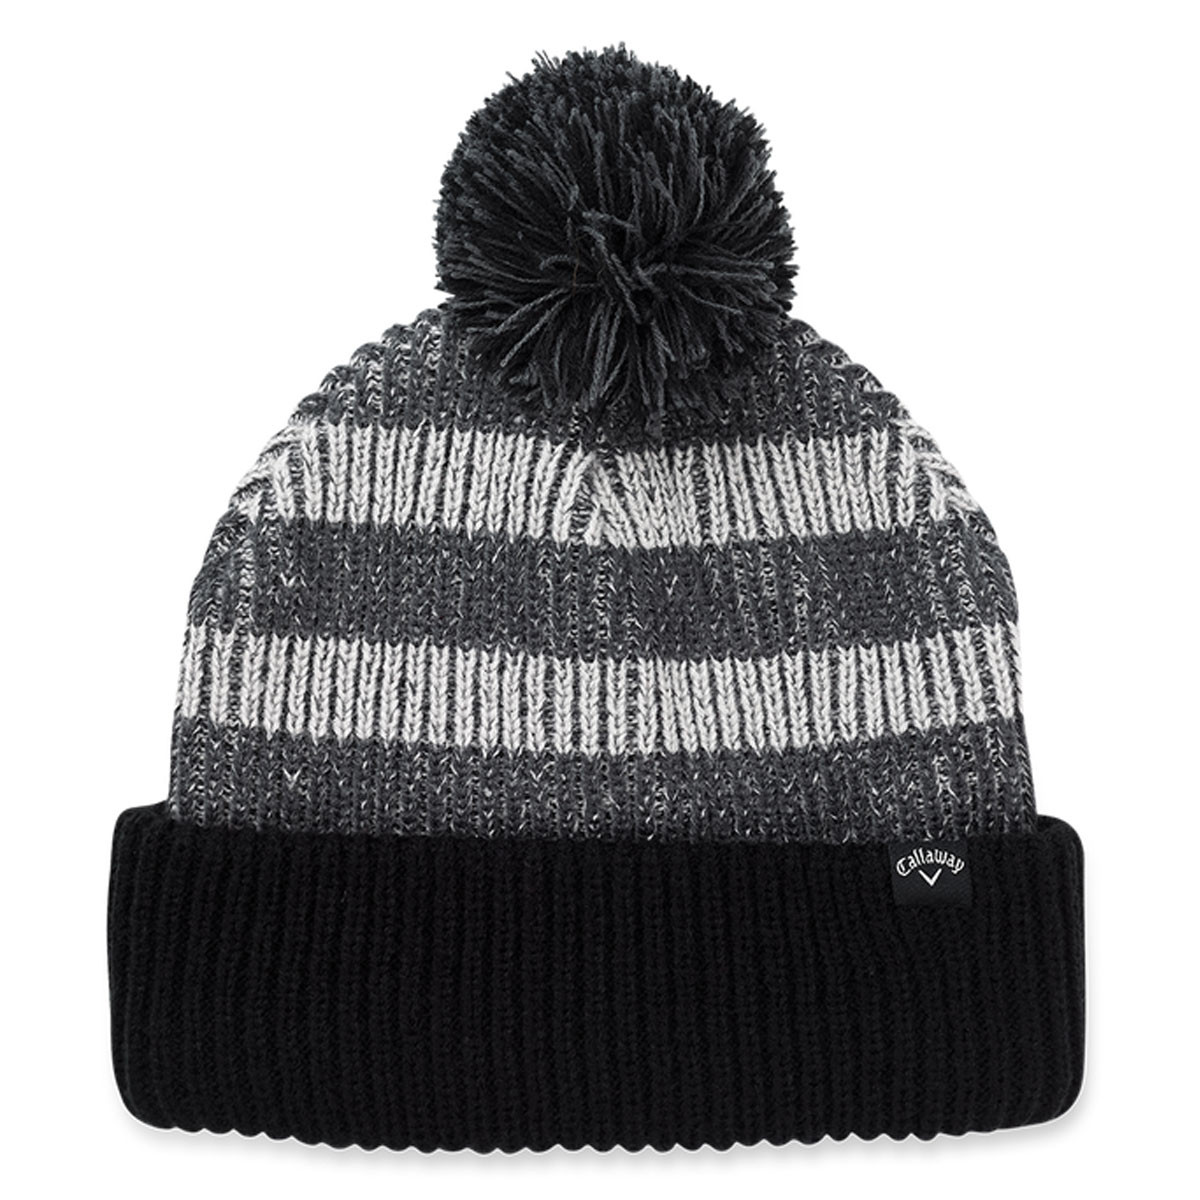 ecc22ed7145 Callaway Golf 2019 Pom Pom Knitted Extra Warmth Beanie Bobble Hat ...